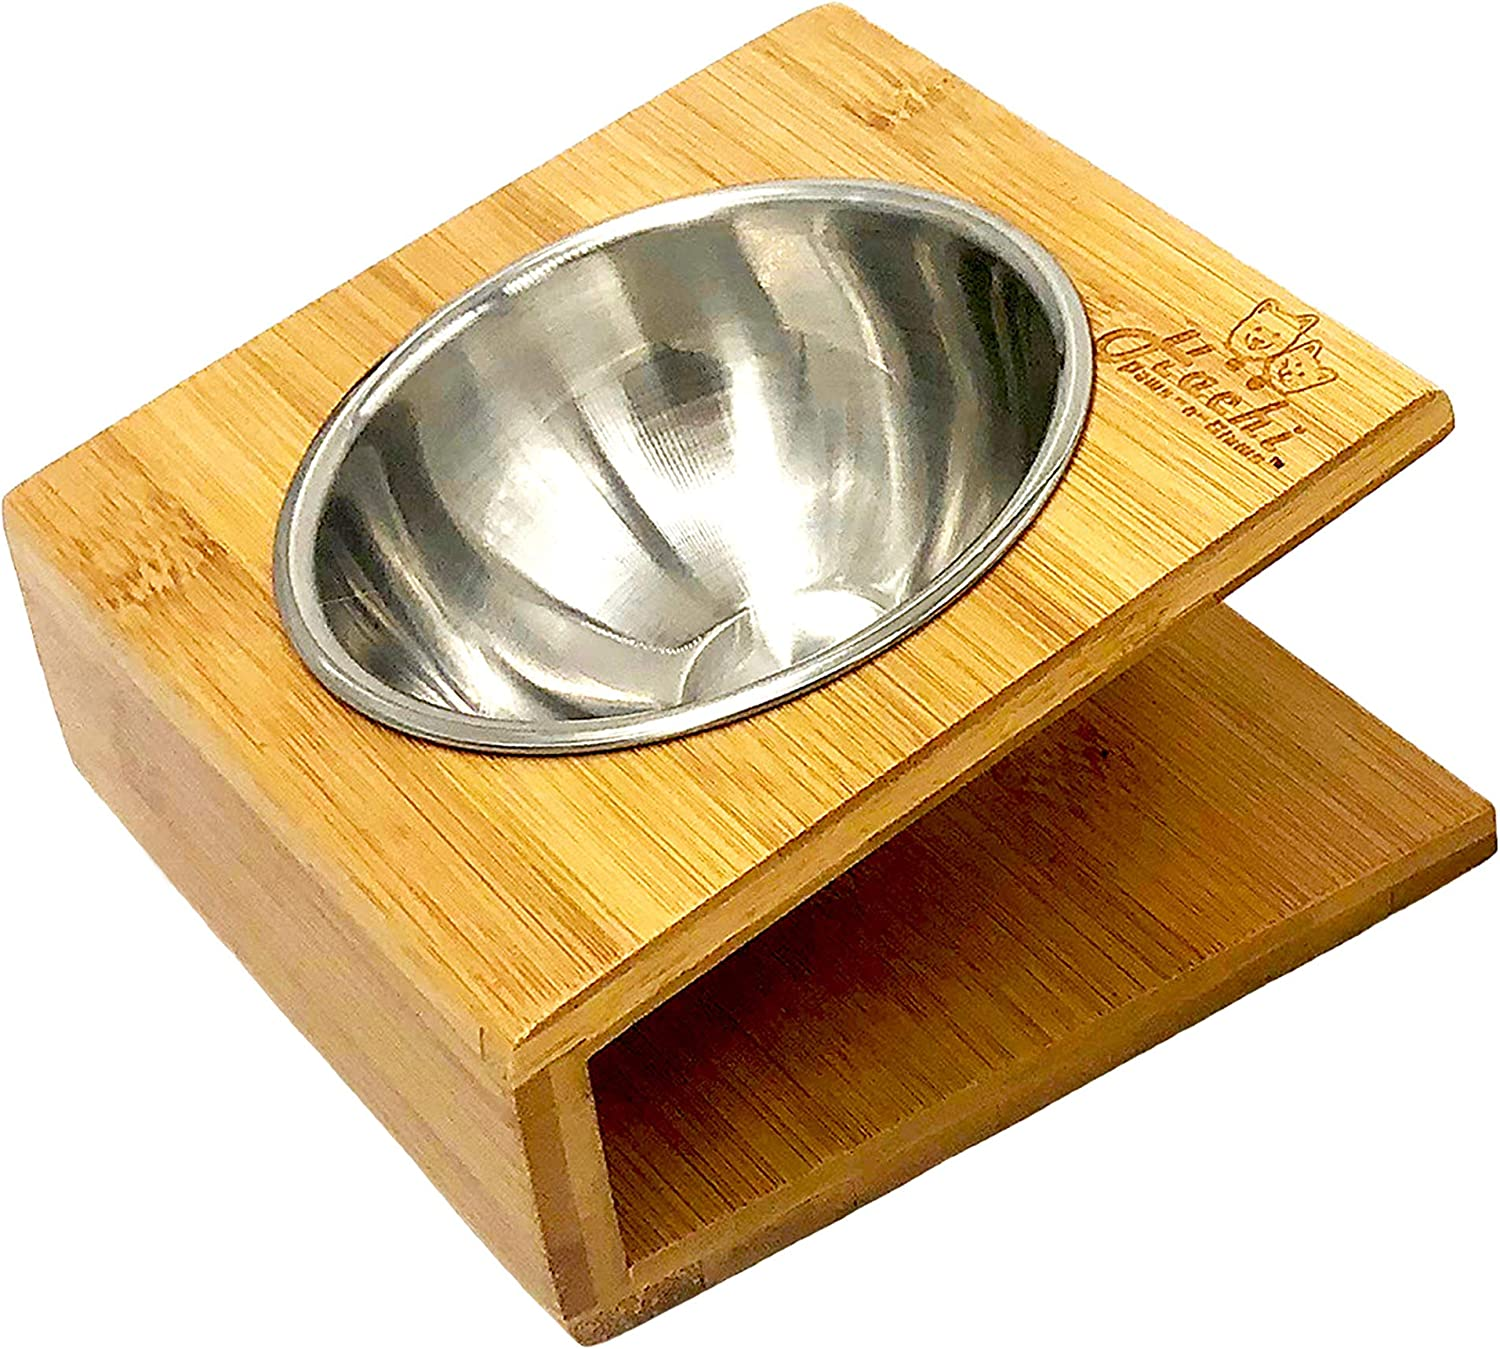 Hachi Paws-n-Claws Raised Slanted Angle Pet Bowl for Cats and Dogs - Bamboo Elevated Dog Cat Food and Water Bowls Stand Feeder with Stainless Steel Bowl and Anti-Slip Feet (XS)